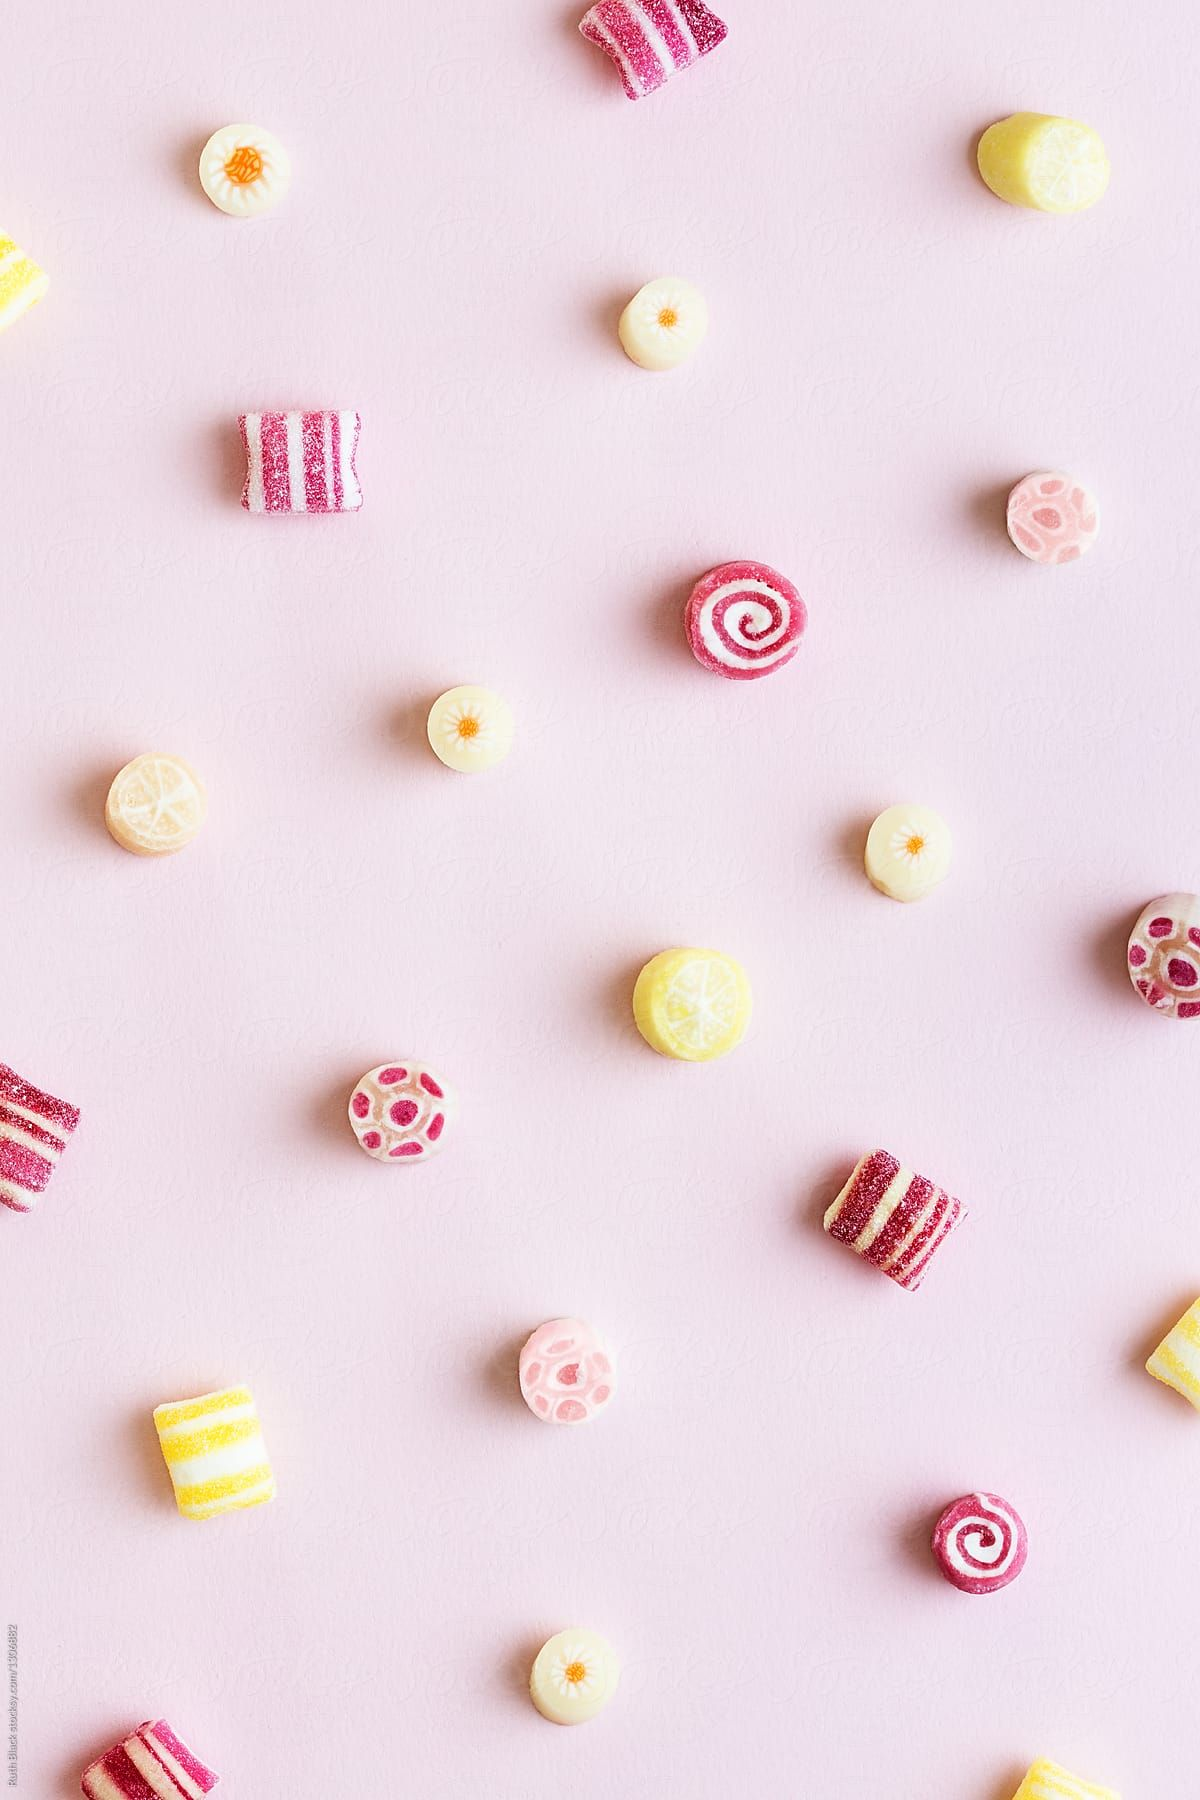 Candy background by Ruth Black for Stocksy United | แบค ...